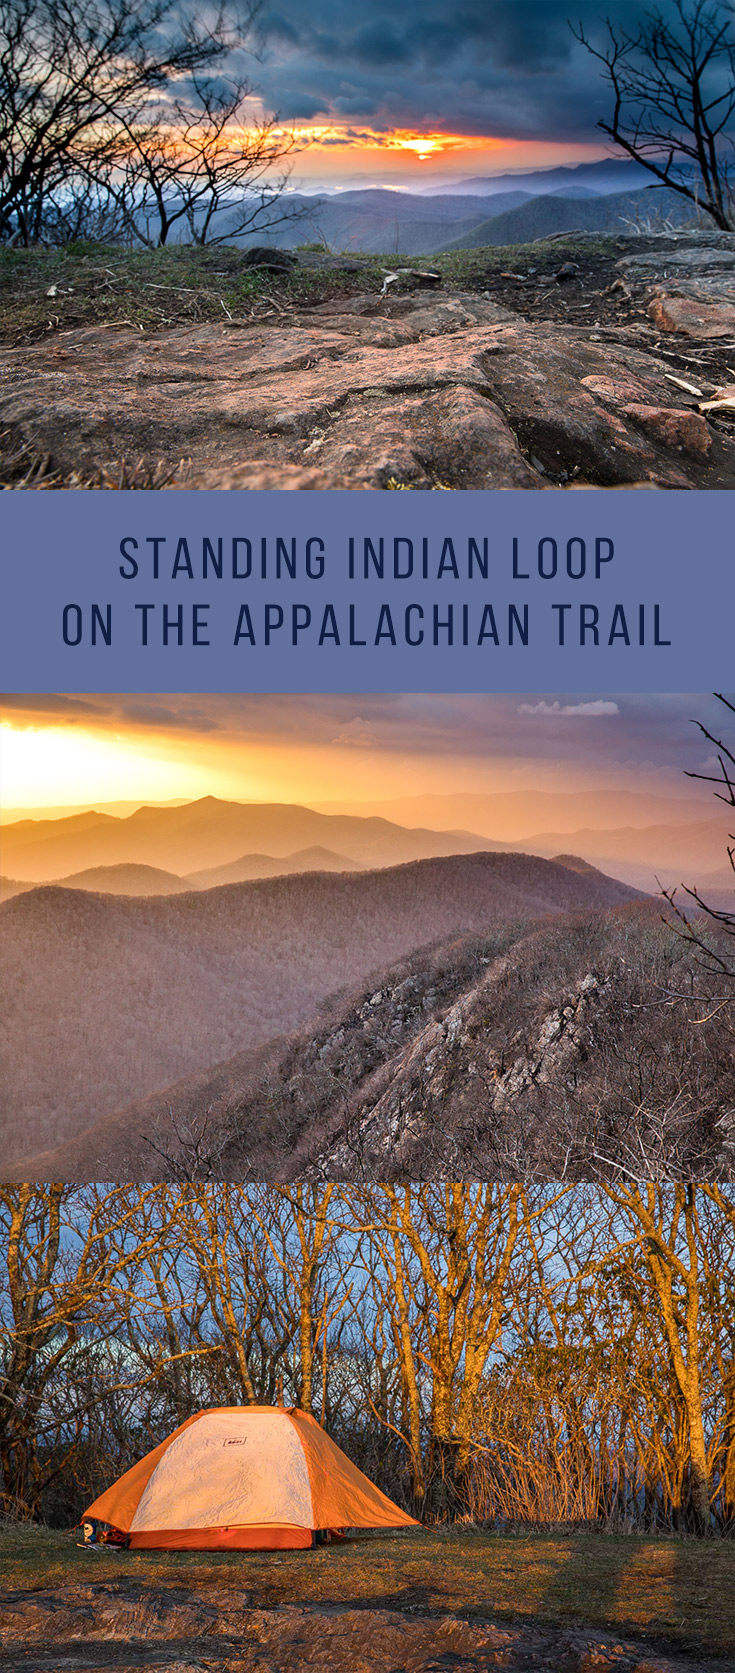 """Standing Indian Loop on the Appalachian Trail: How a myth, a storm, and friendship can electrify your perspective  A long time ago, in the area where Franklin, NC now sits, local Cherokee told a story of a winged beast that swooped down from the skies and stole children. Heartbroken and desperate, the local villagers sent a warrior to the highest mountain to keep watch for the winged monster and to discover its lair. The warrior found the lair, but it was in a place in the mountains inaccessible to humans, so the Cherokee villagers prayed to the Great Spirit for assistance. The Great Spirit heard their pleas and sent thunder and lightning to destroy the winged monster. The lightning scarred the surrounding mountains but the warrior, afraid for his life, tried to abandon his post. To punish his act of cowardice the Great Spirit sent a bolt of lightning to the mountain summit, leaving a bald and turning the warrior to stone. From that day forward the mountain was called Yunwitsule-nunyi which means """"where the man stood.""""  Today we call it Standing Indian Mountain. The bald is still there, as well as the rock scars on the sides of the nearby mountains, but the rock shaped like a man is crumbling, forgotten to all except those that know to look for it."""